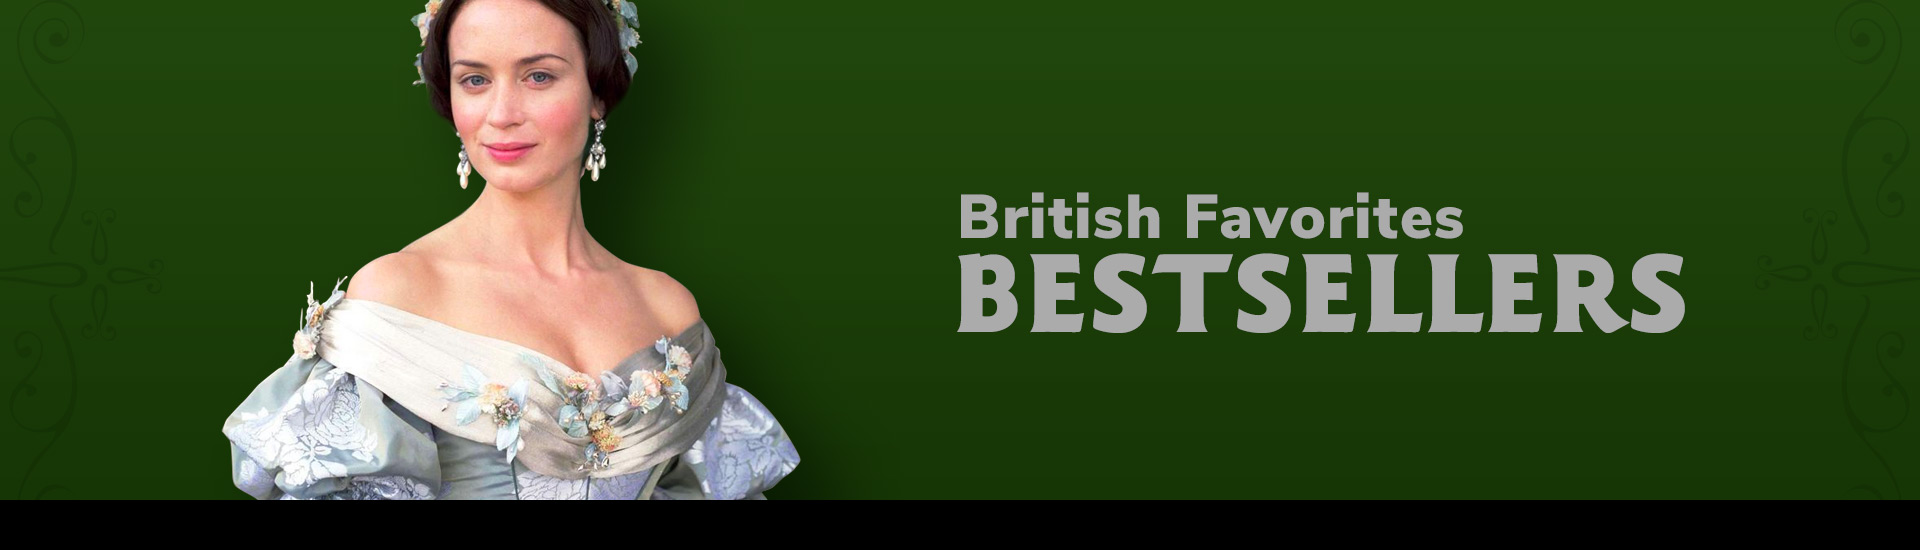 Save an extra 25% on British Favorites